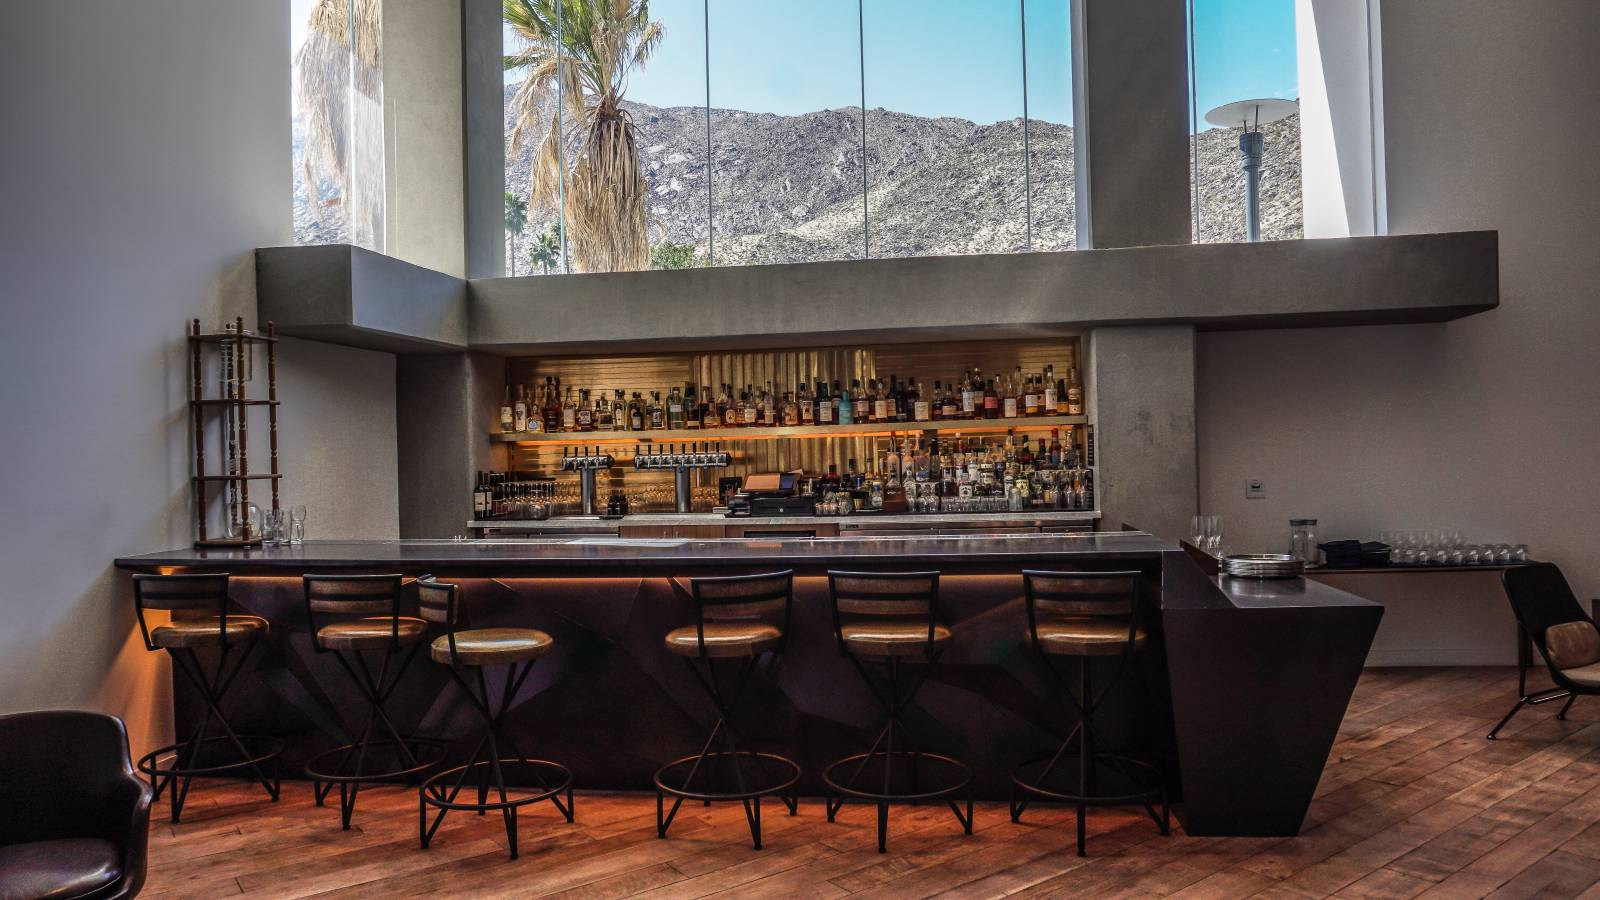 Luxury Palm Springs Hotels - Rowan Palm Springs - Kimpton Hotel